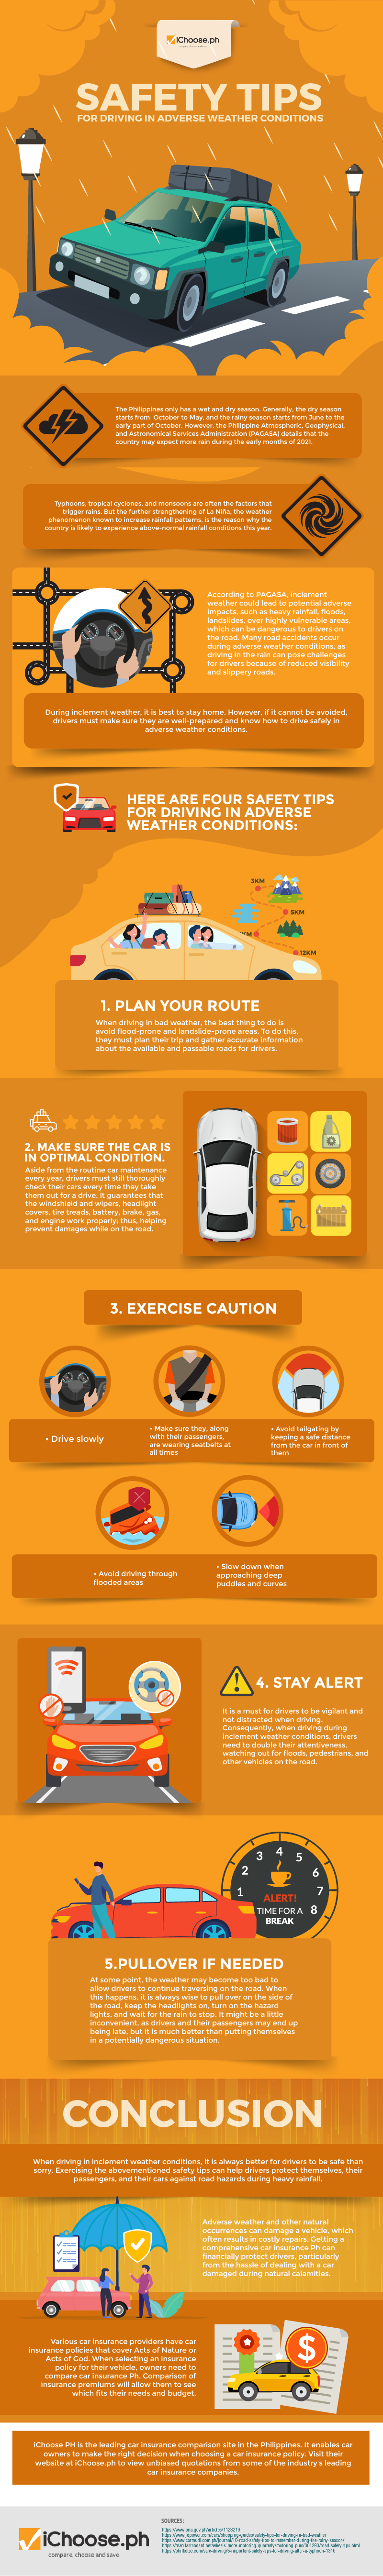 Safety Tips for Driving in Adverse Weather Conditions-01